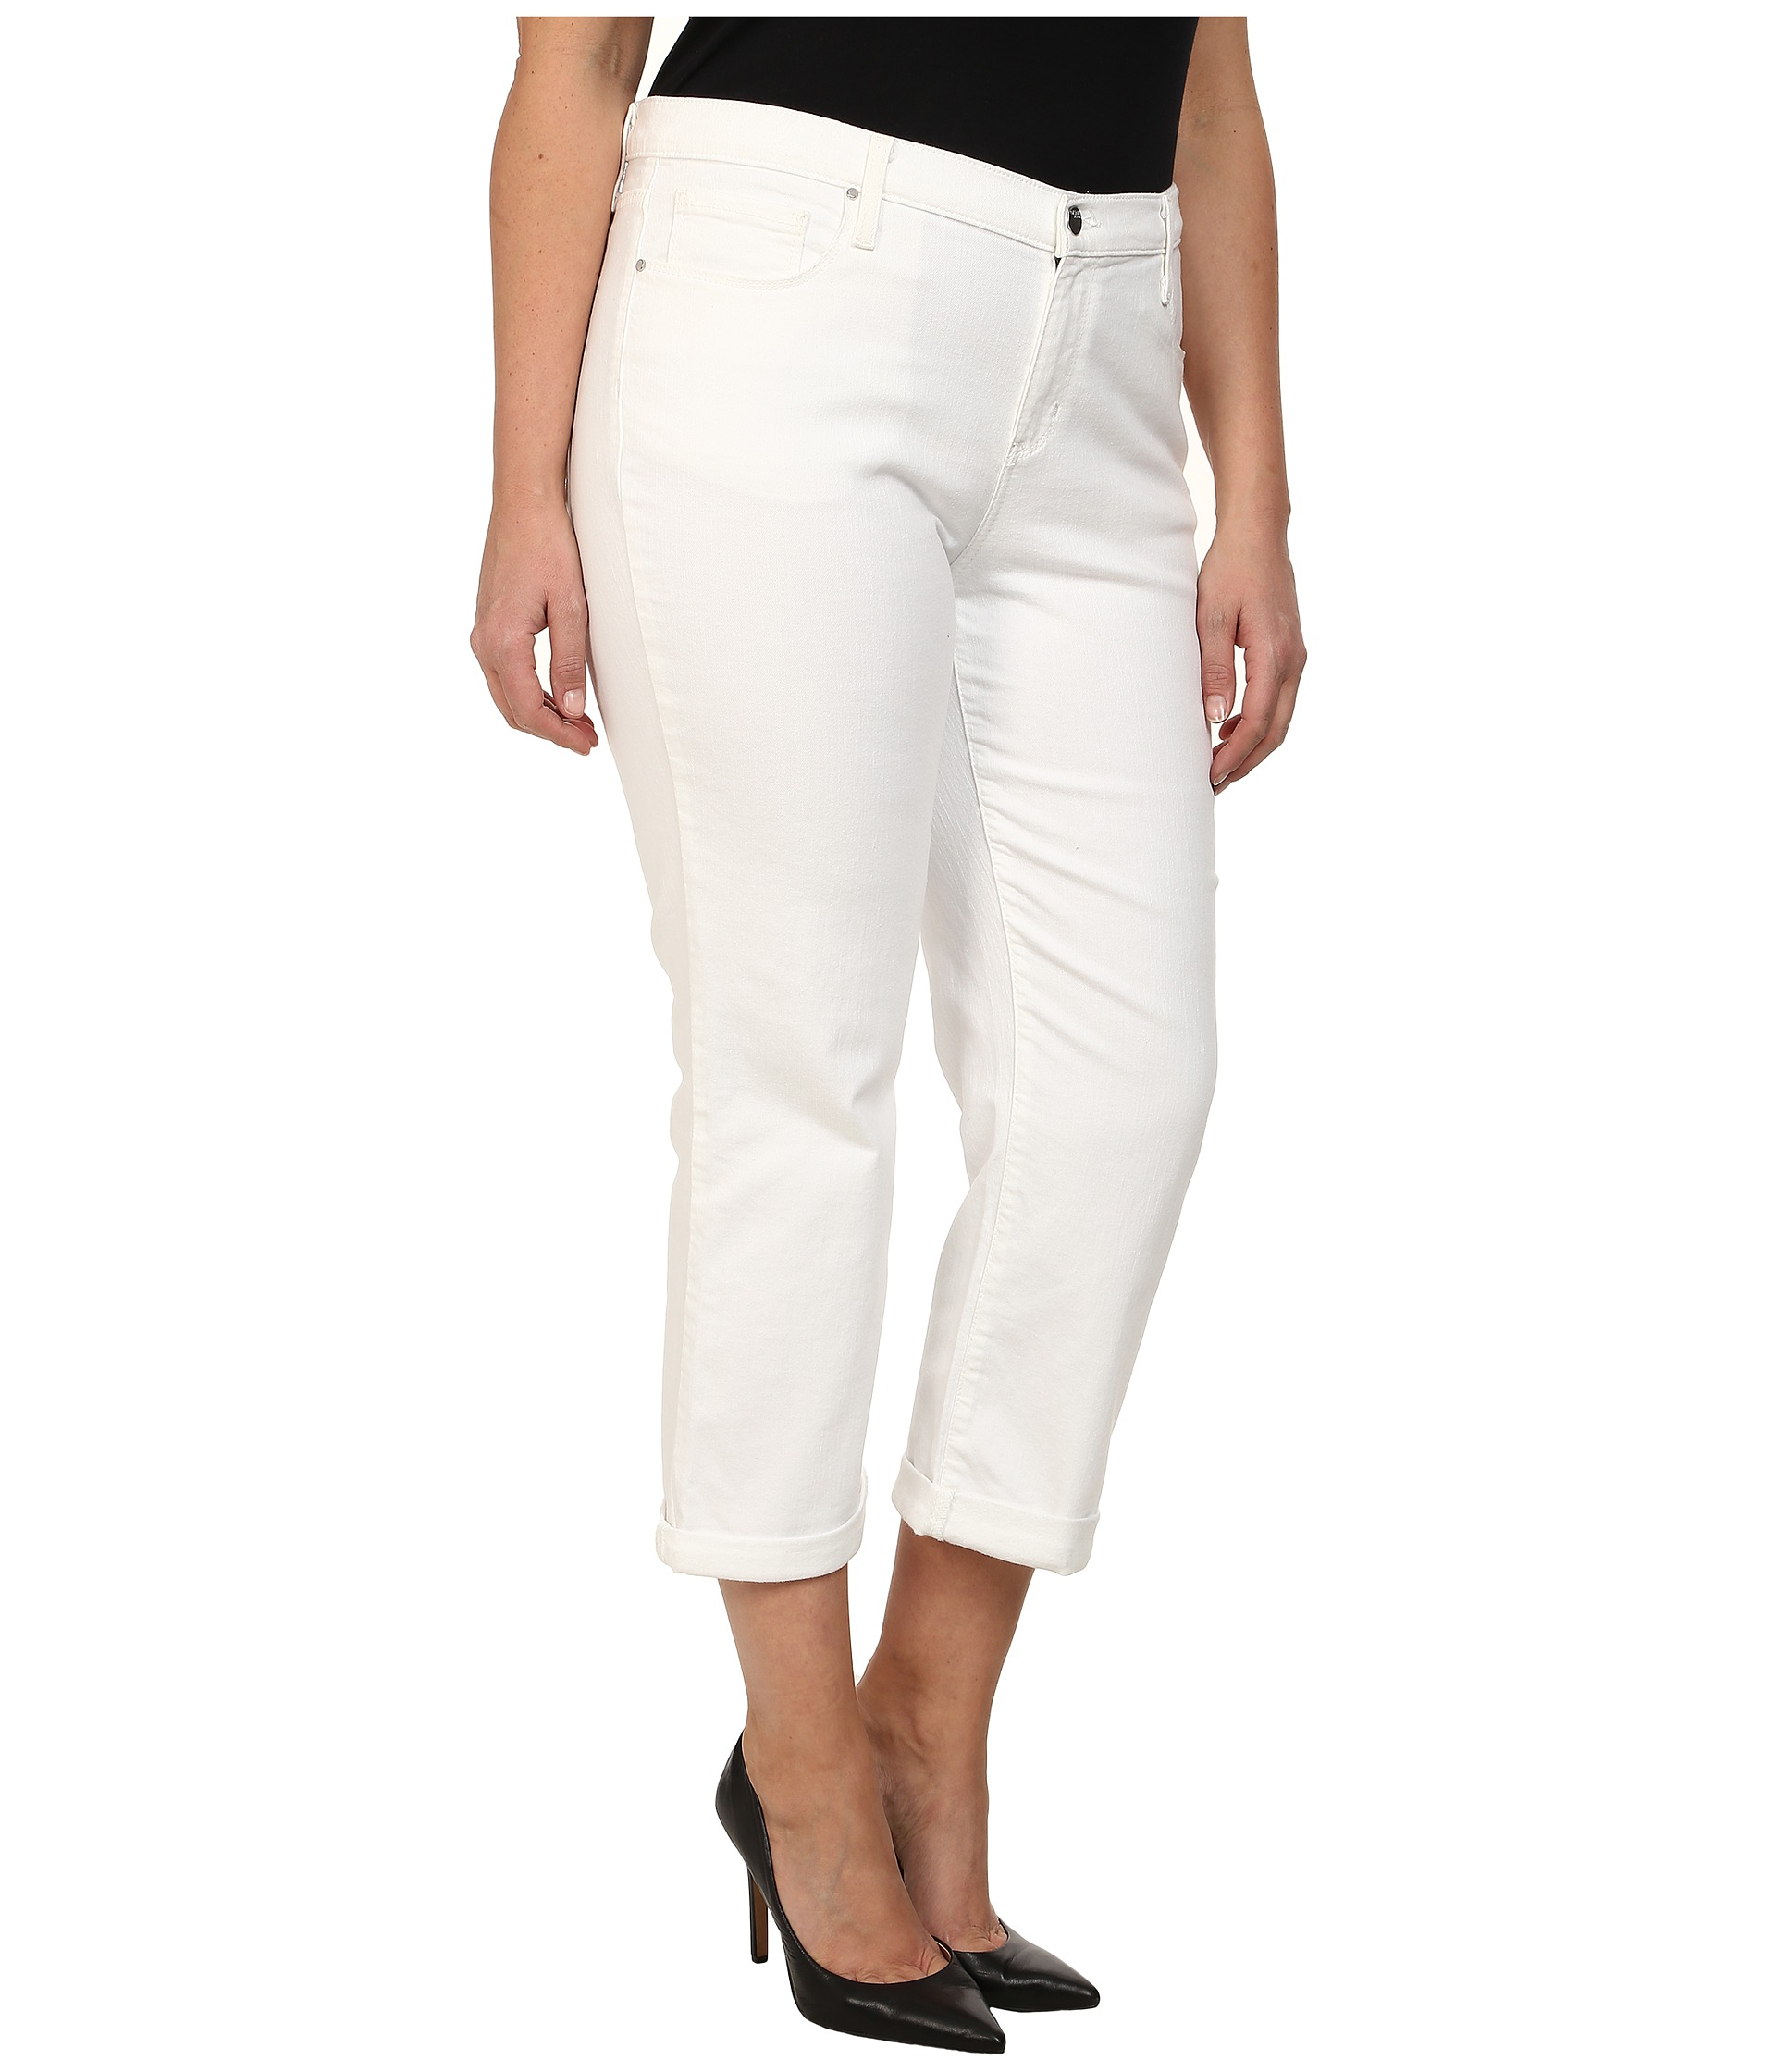 ASOS DESIGN Maternity Ridley high waist skinny jeans in white with under the bump waistband £ ASOS DESIGN Maternity Rivington with over the bump waistband in black cord.